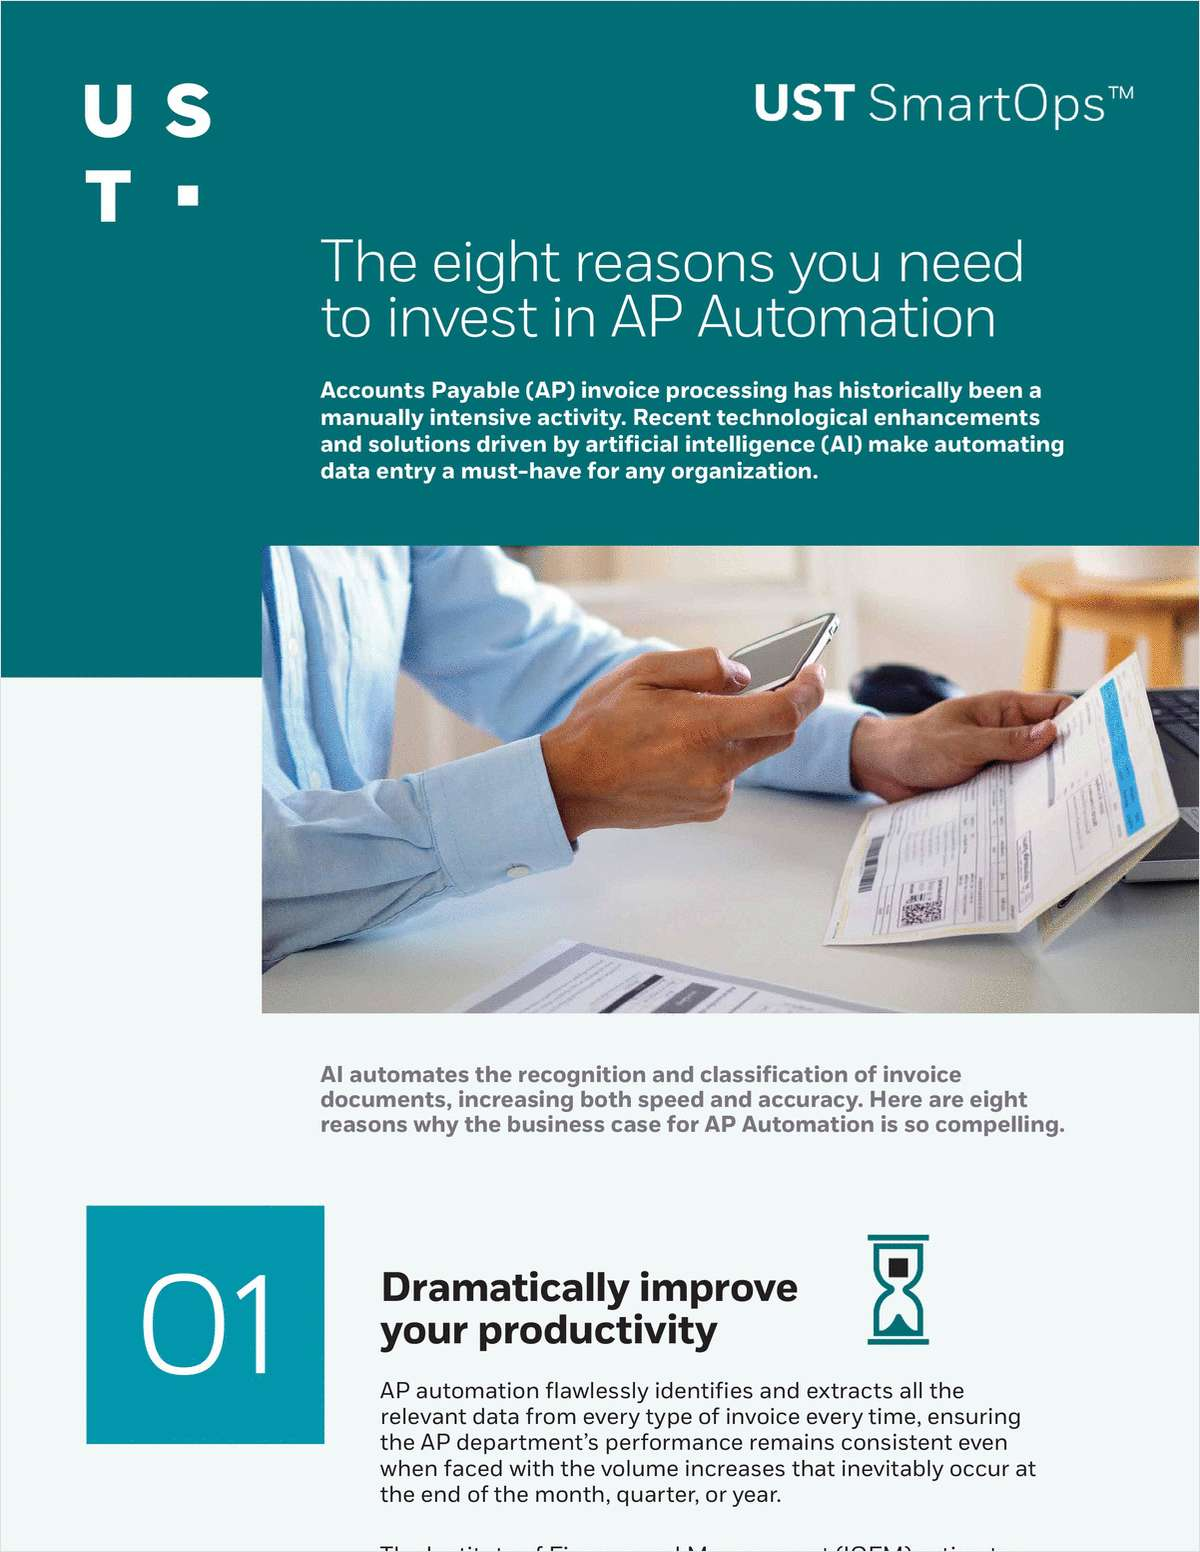 8 reasons you need to invest in AP Automation